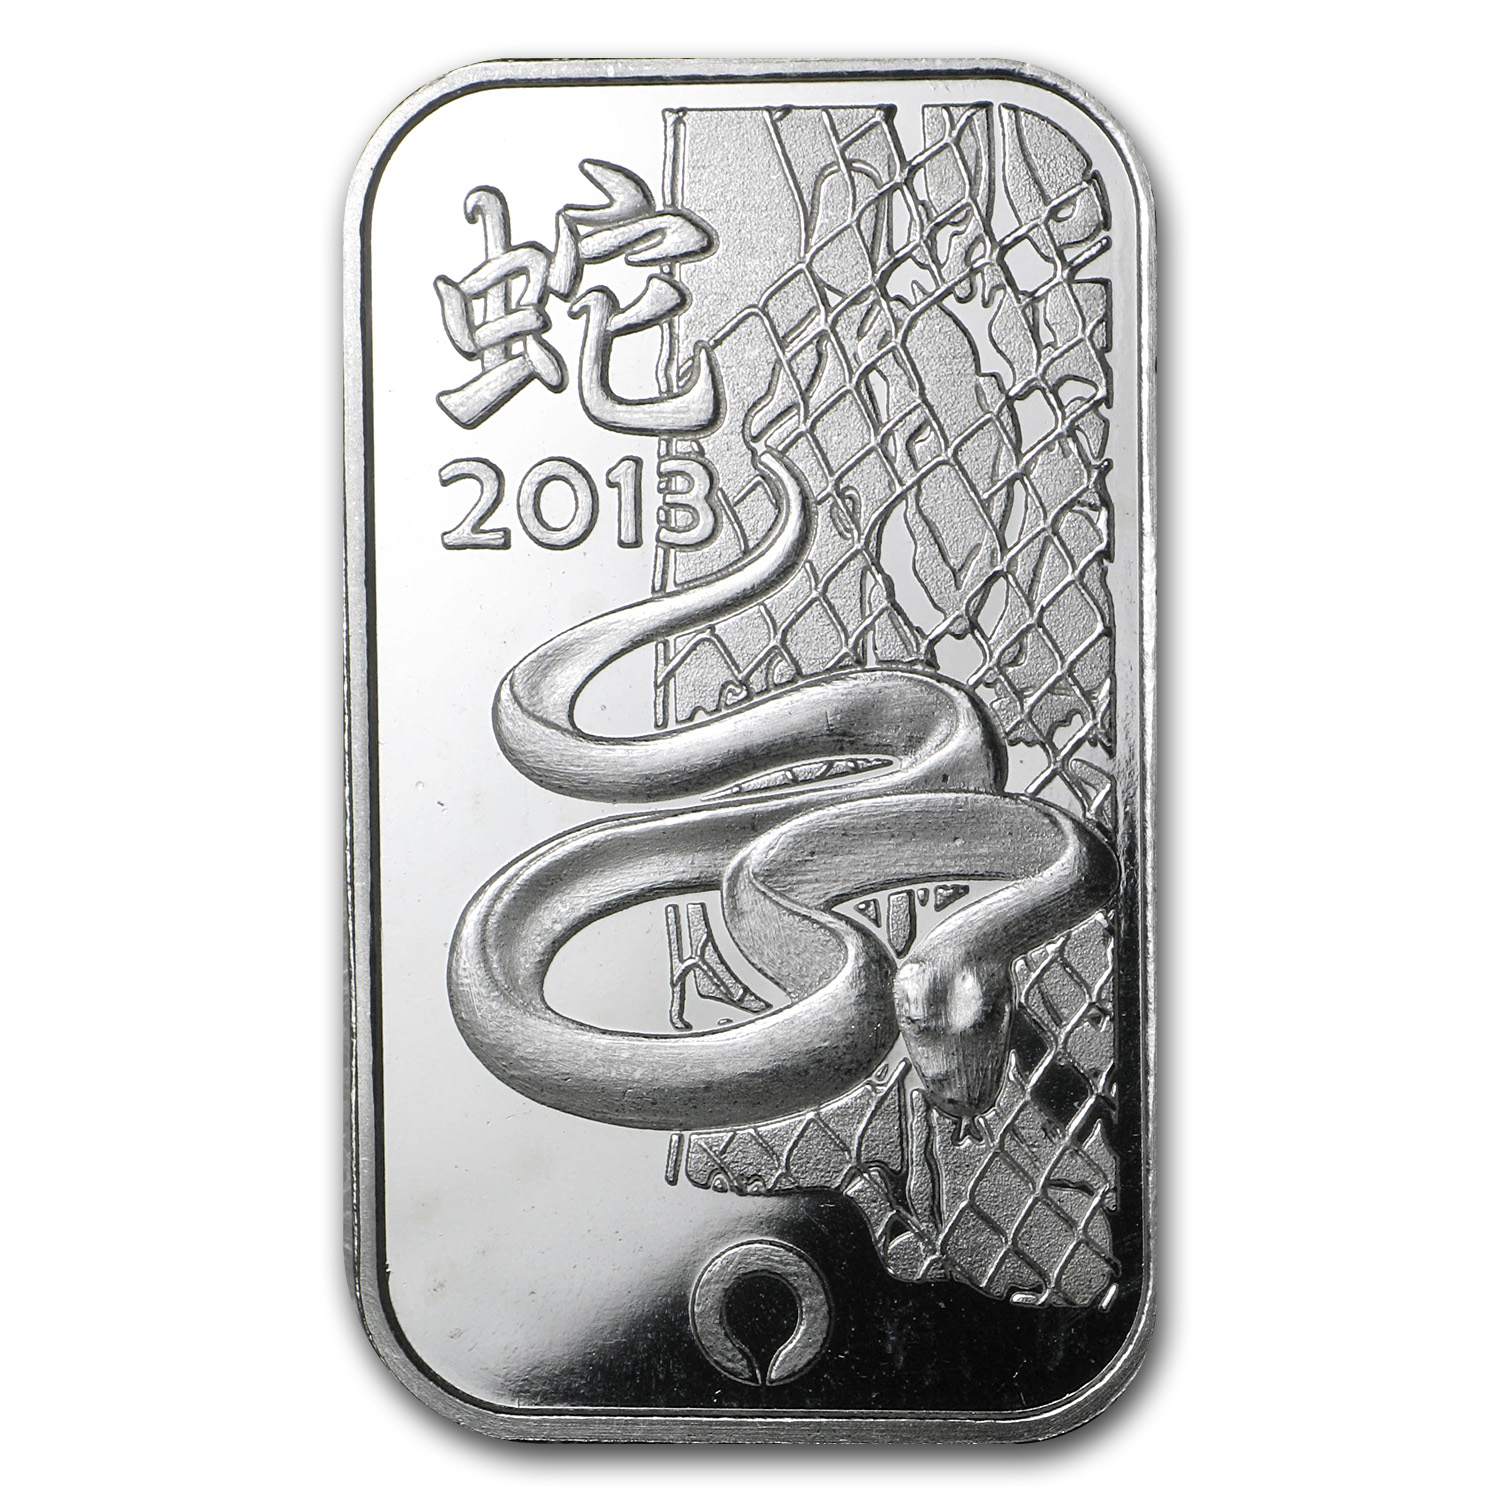 1 oz Silver Bars - Rand Refinery (Year of the Snake)